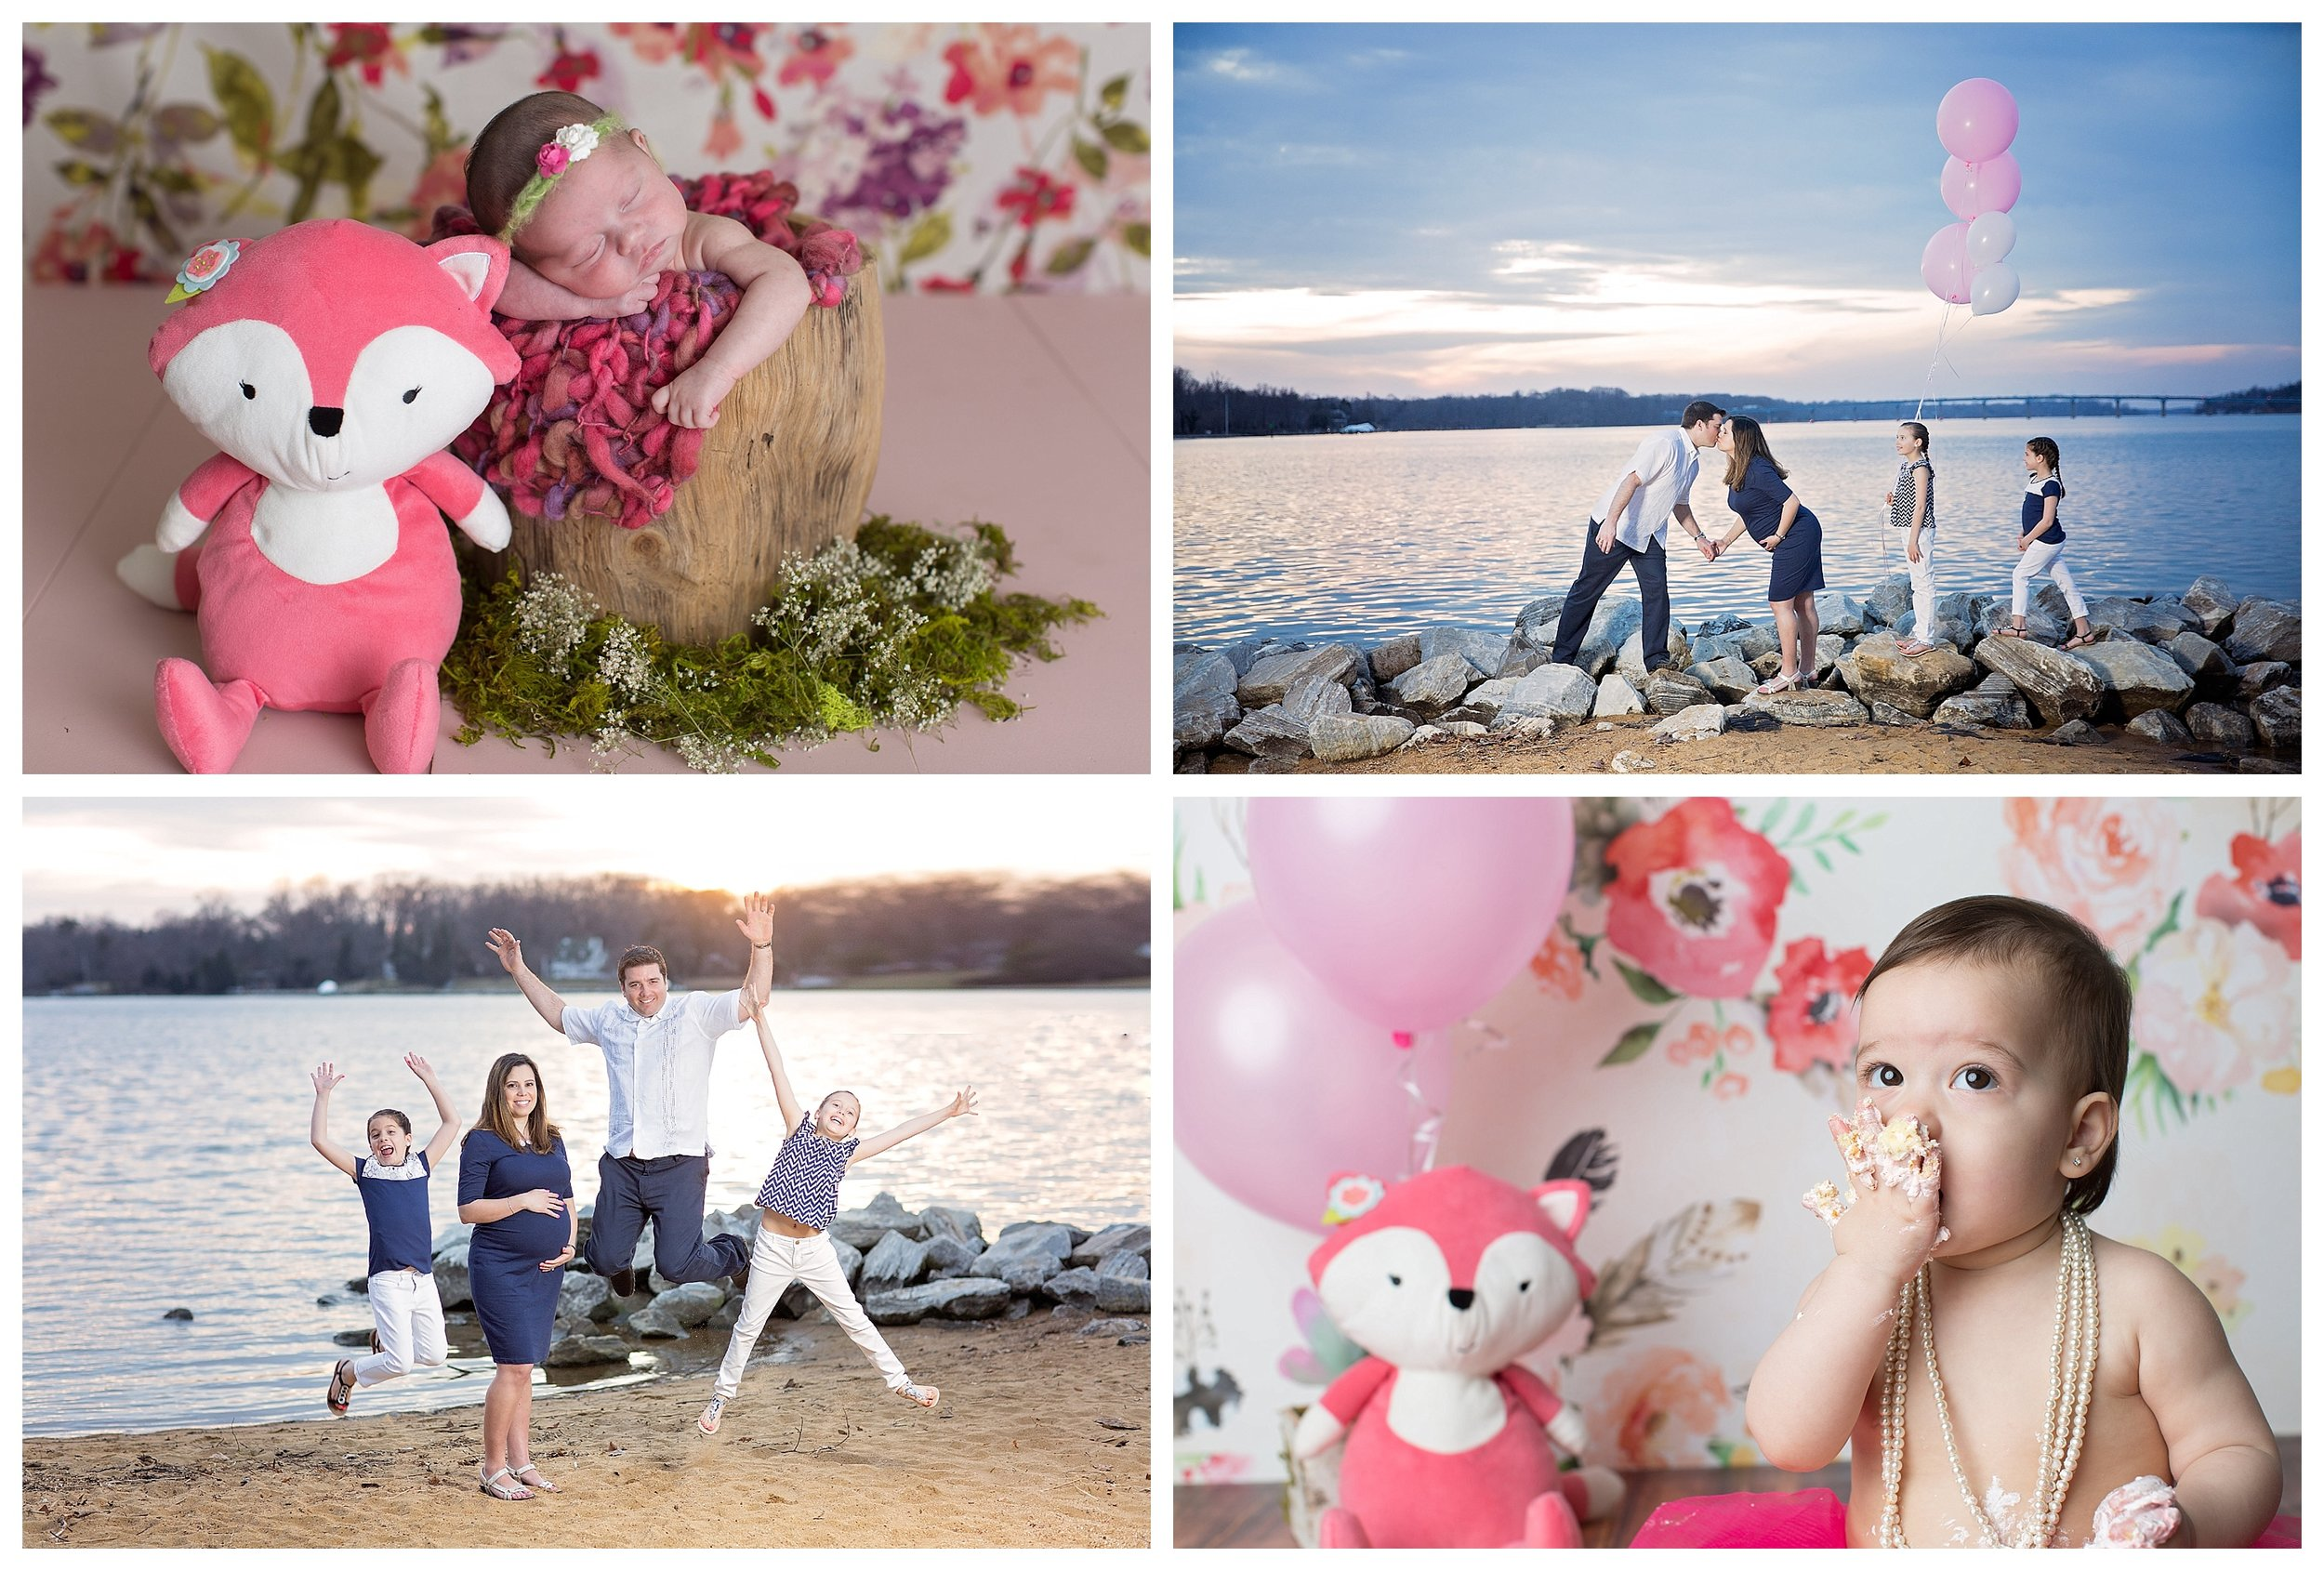 Bump & First Year $1500  Includes Maternity, Full Newborn, Two Milestones of your choice.